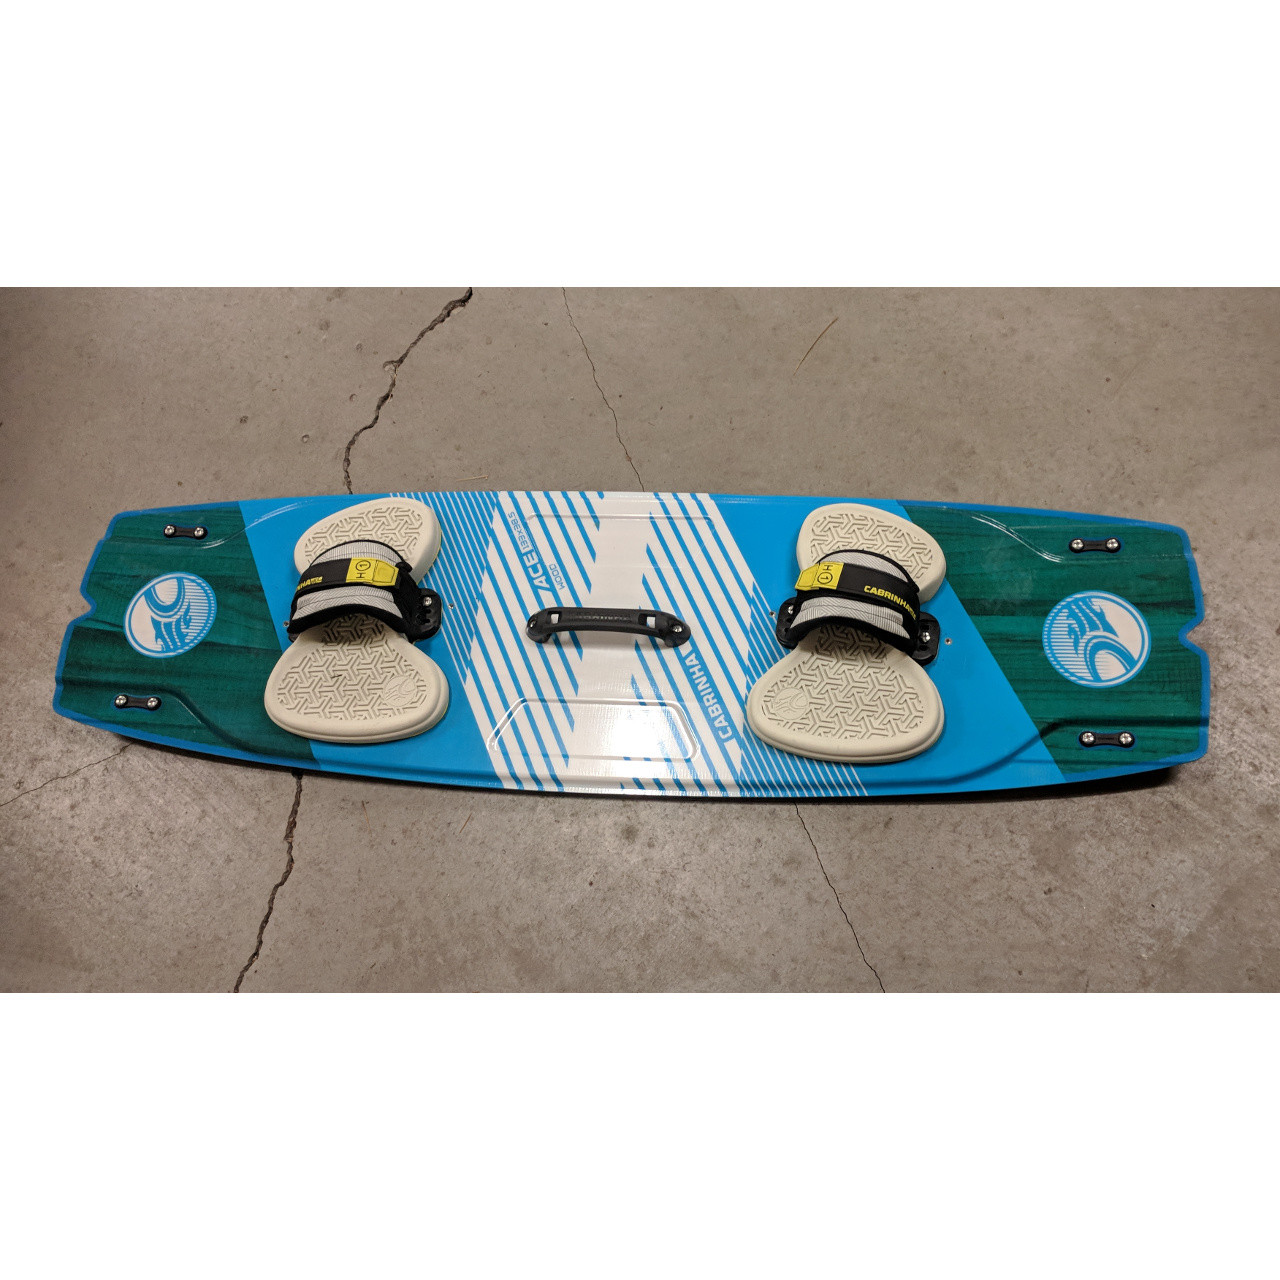 Cabrinha Ace Wood 133 Demo with H1 Bindings